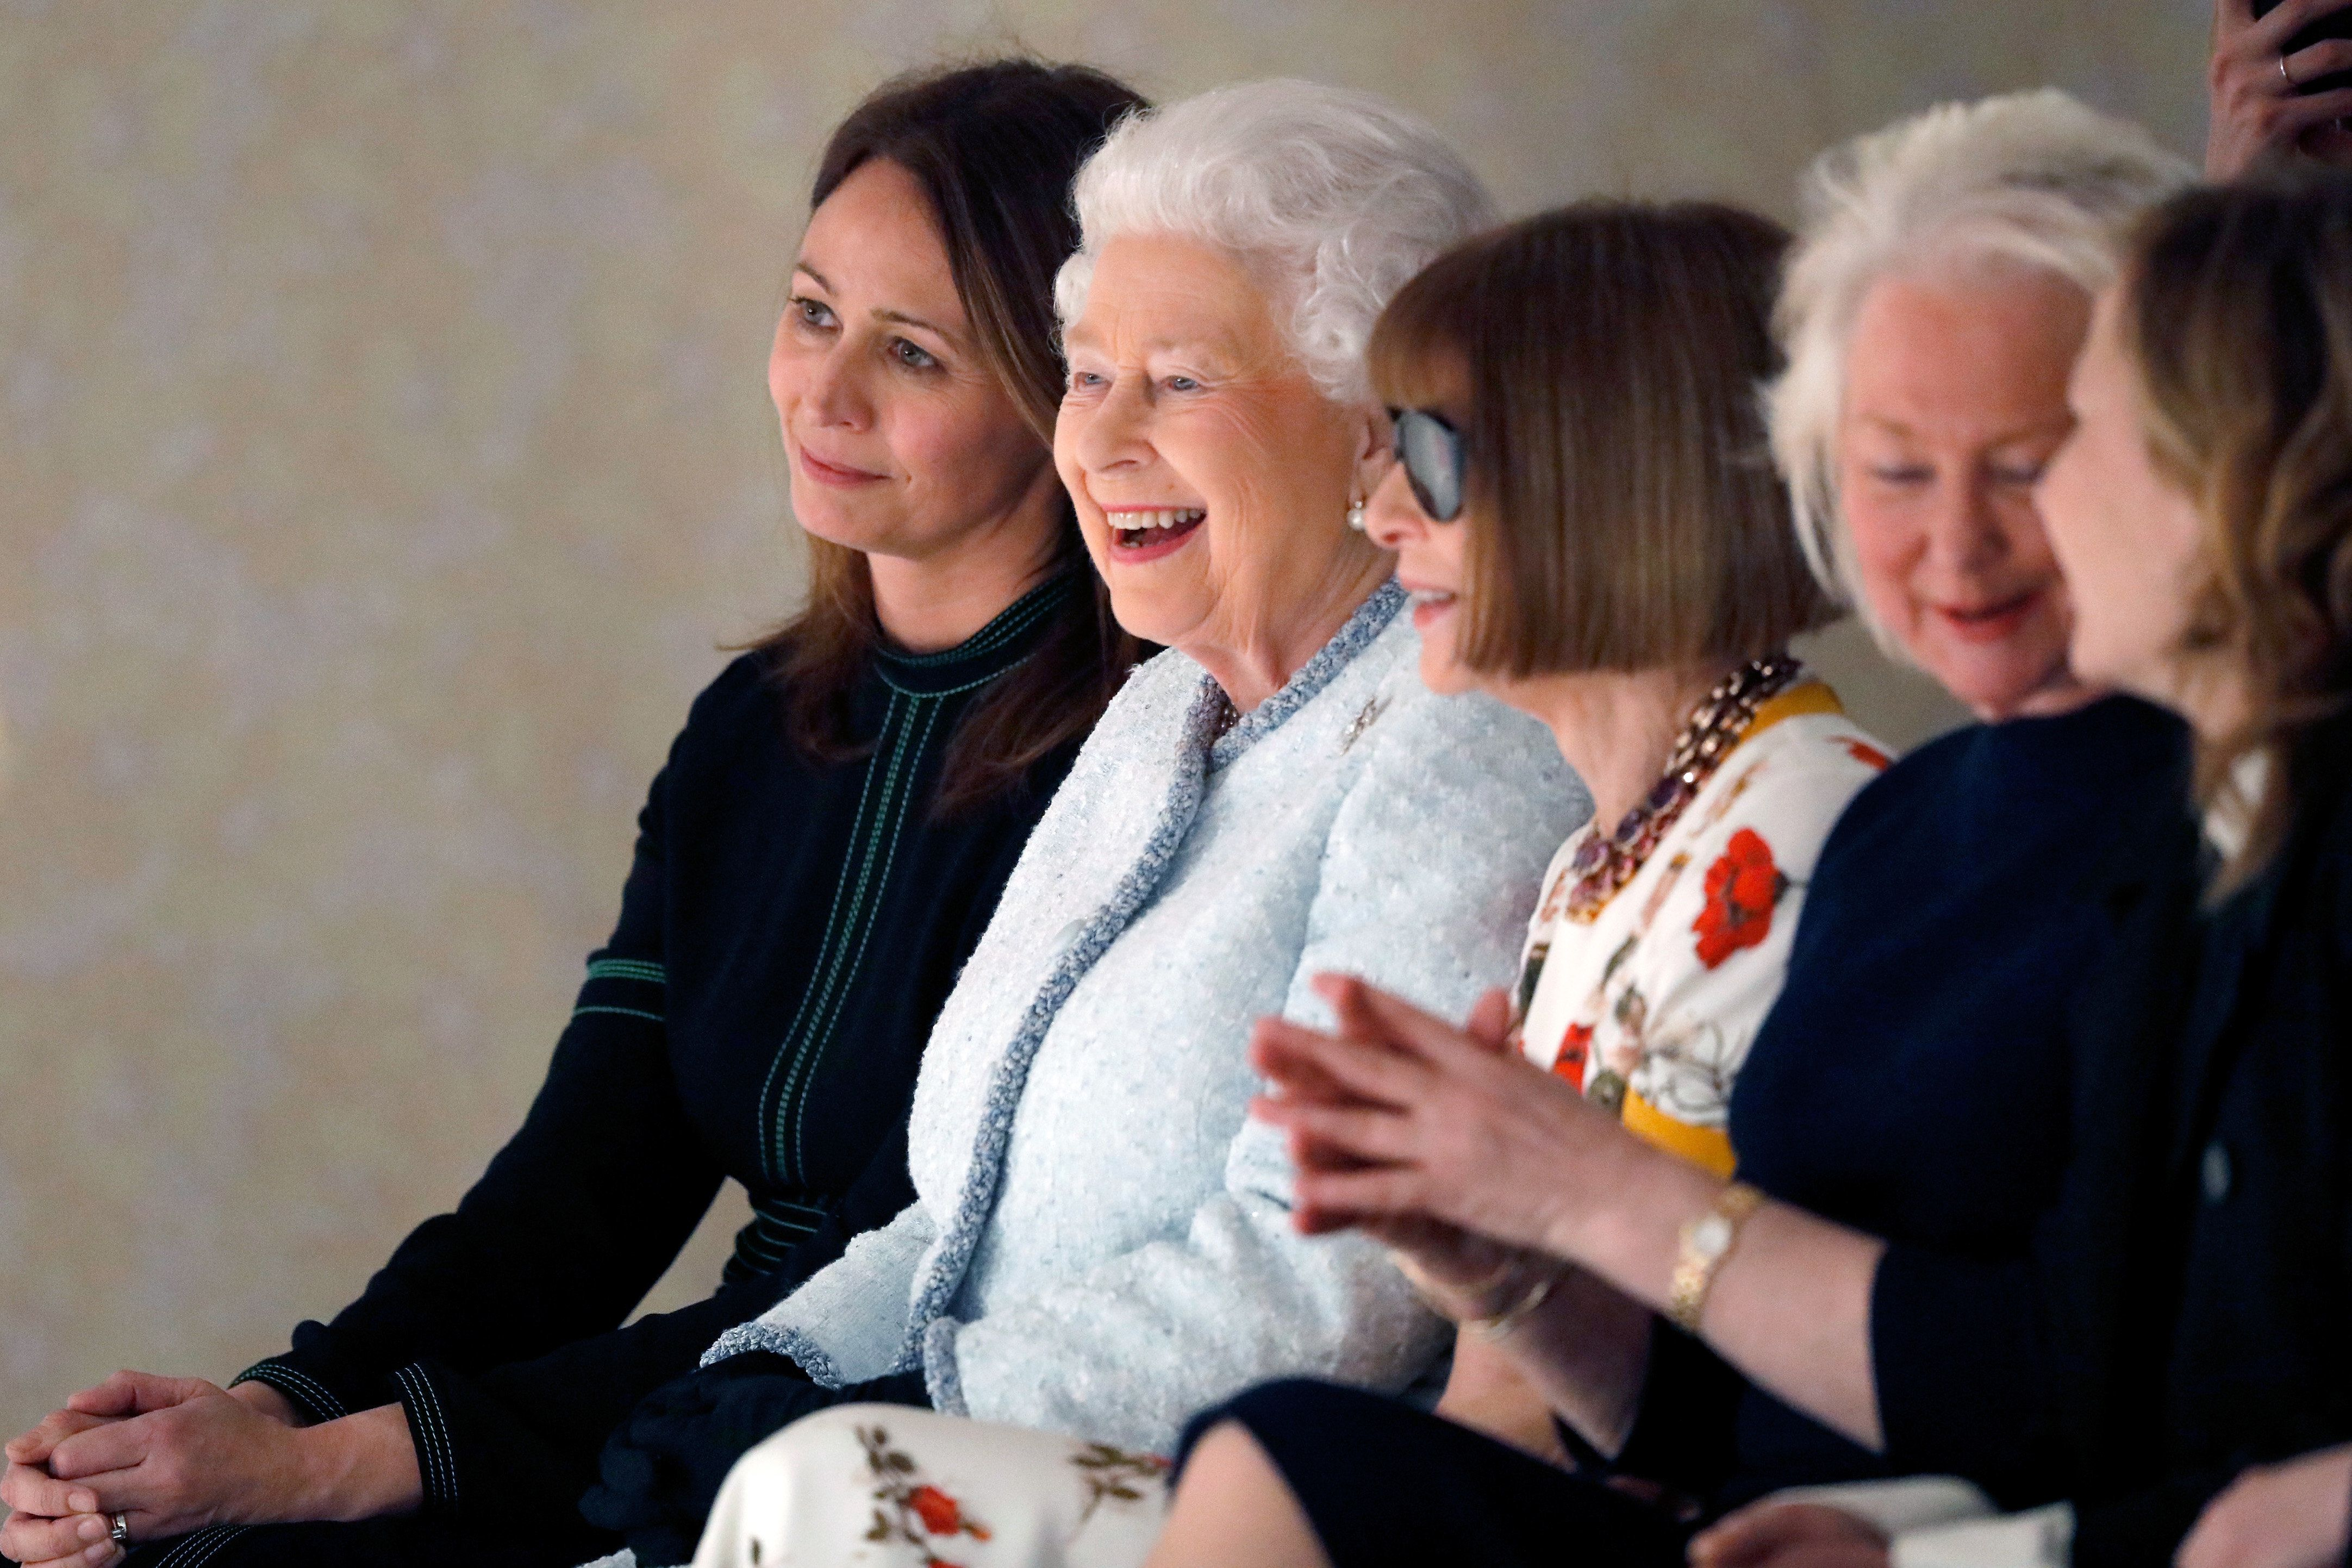 From left, British Fashion Councilchief executive Caroline Rush, Queen Elizabeth II and Vogue Editor-in-Chief Anna Wintour attend the Richard Quinn show during London Fashion Week on Feb. 20, 2018, in London.